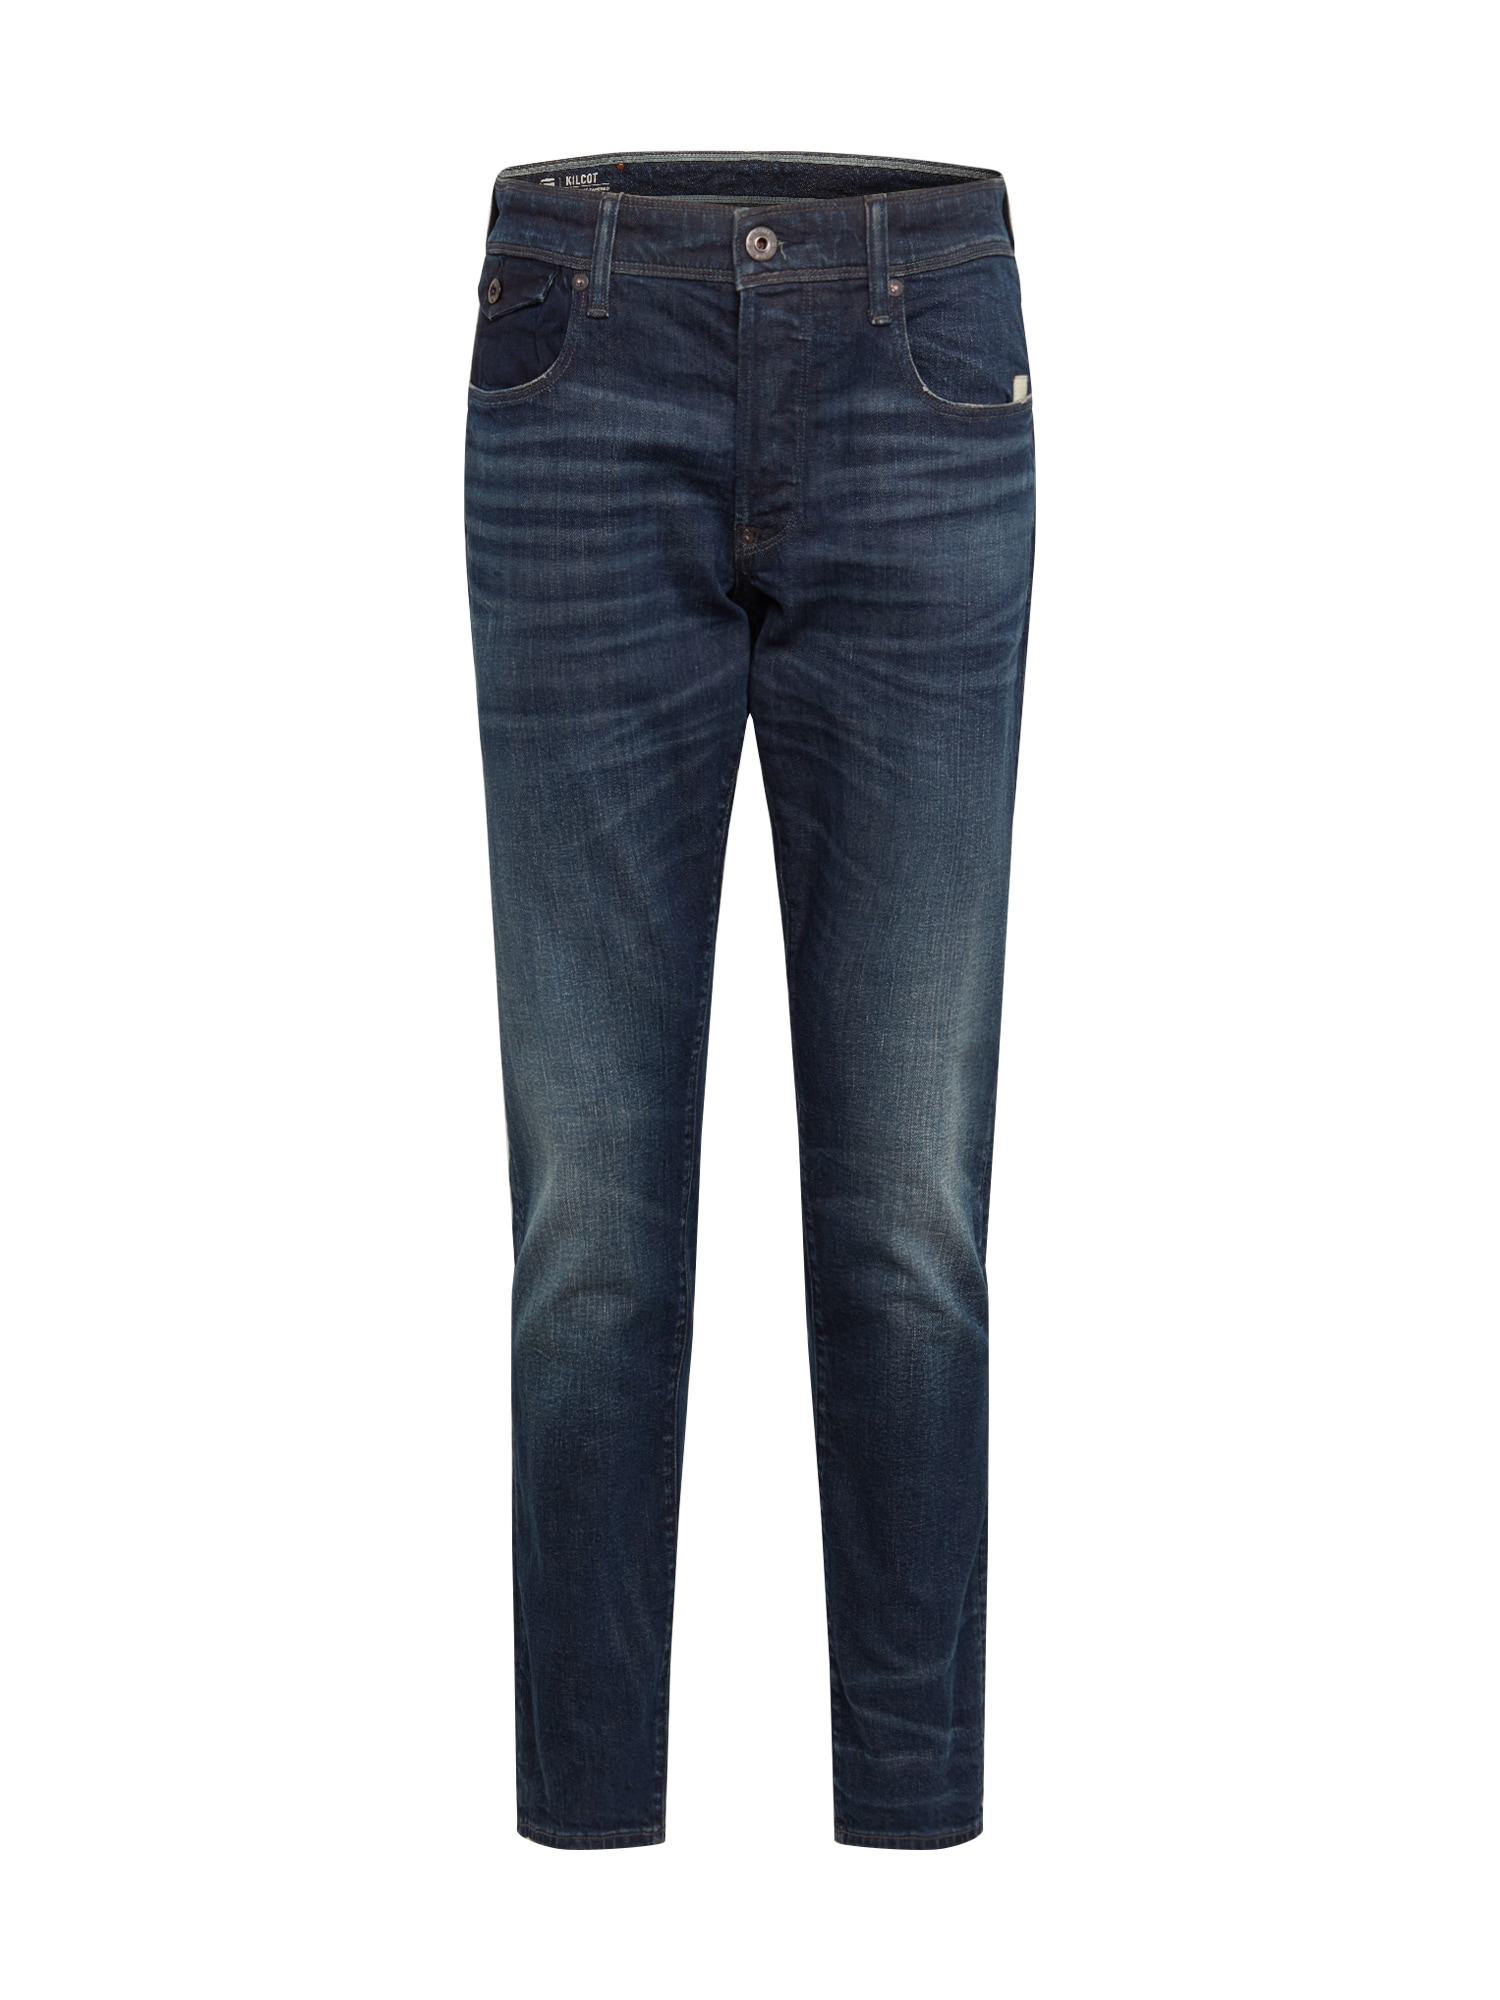 G-Star RAW Džinsai 'Kilcot straight tapered' tamsiai (džinso) mėlyna